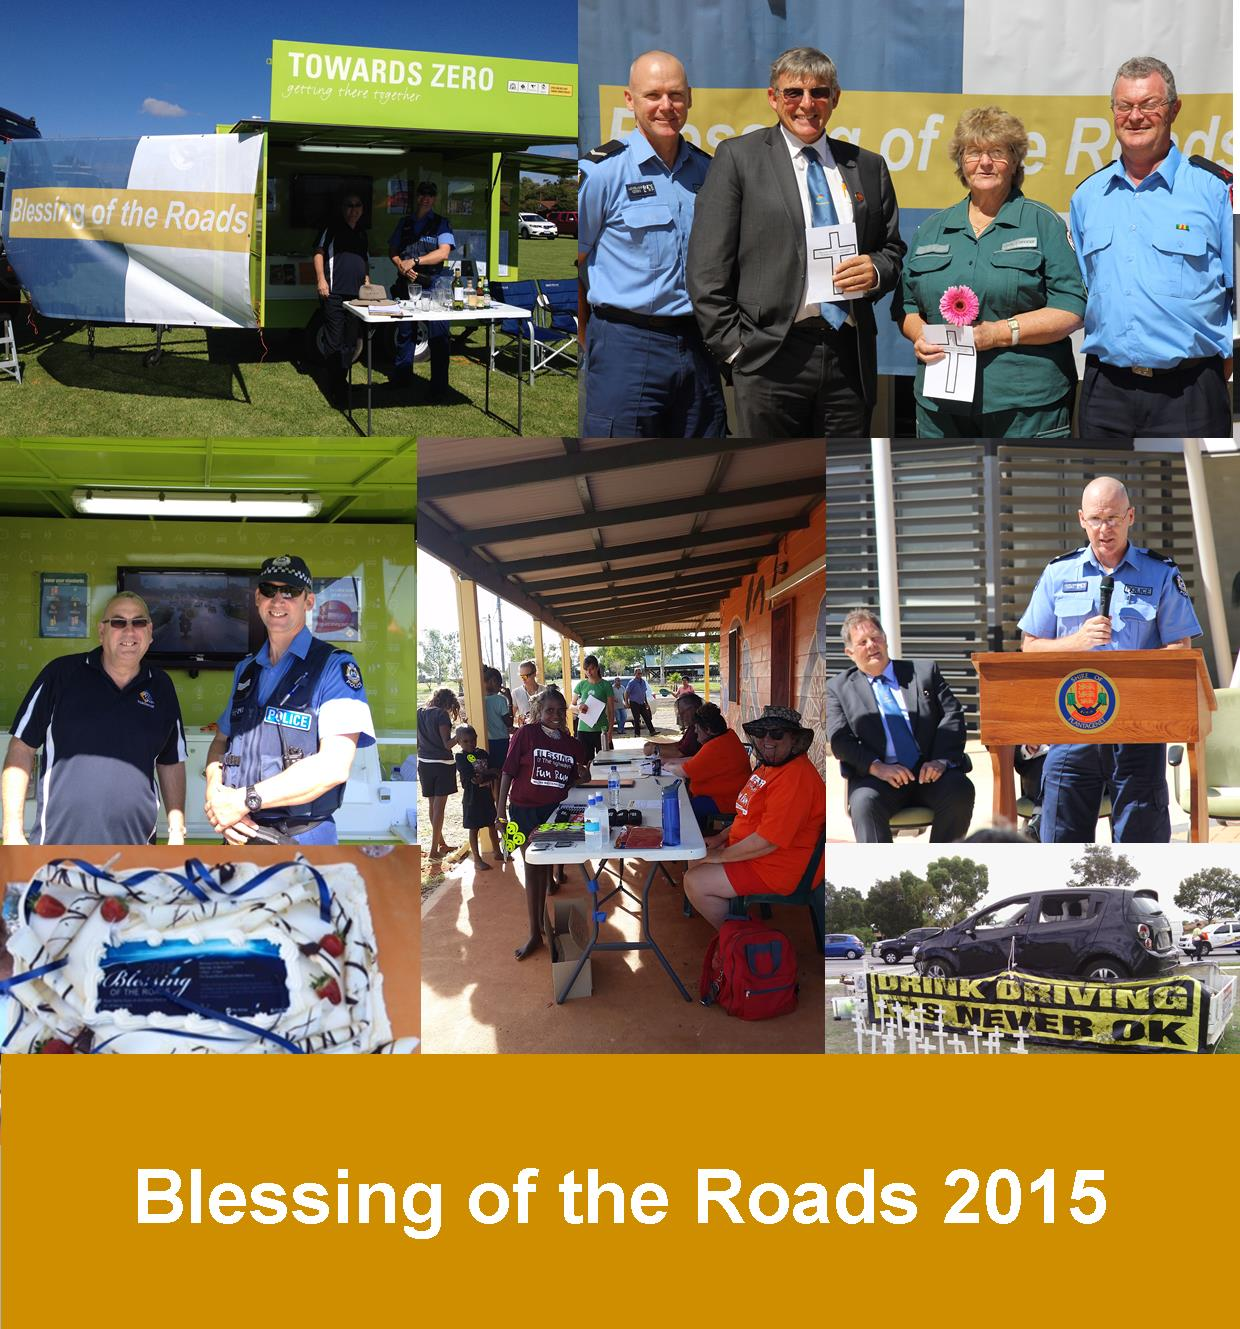 Blessing of the Roads 2015 photo collage